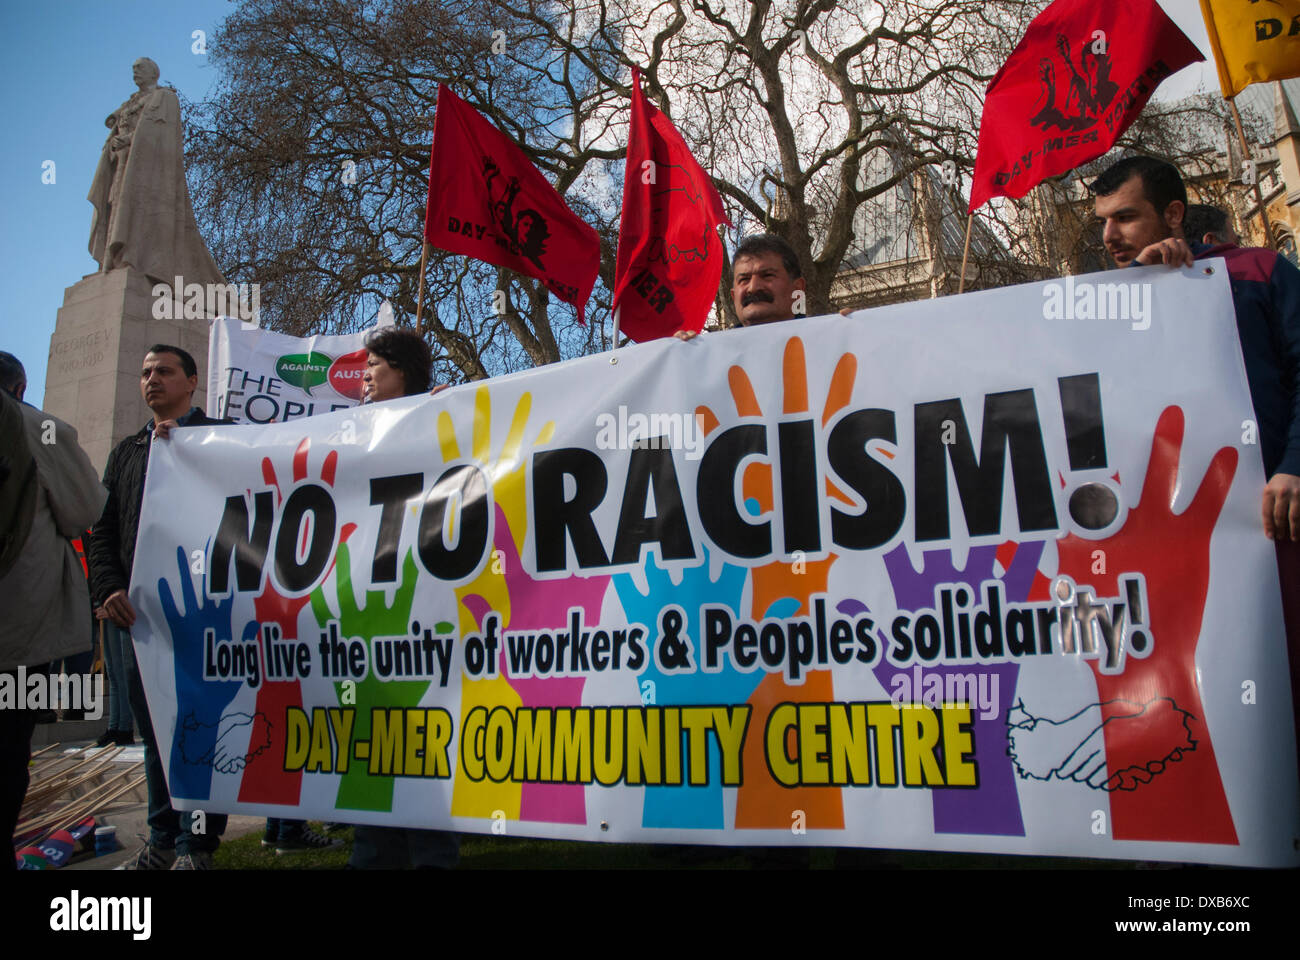 London, UK. 22nd March 2014. People gathered at Old Palace Yard hold up a No To Racism banner prior to the Anti-Racism rally setting off for Trafalgar Square in central London. Credit:  Peter Manning/Alamy Live News - Stock Image